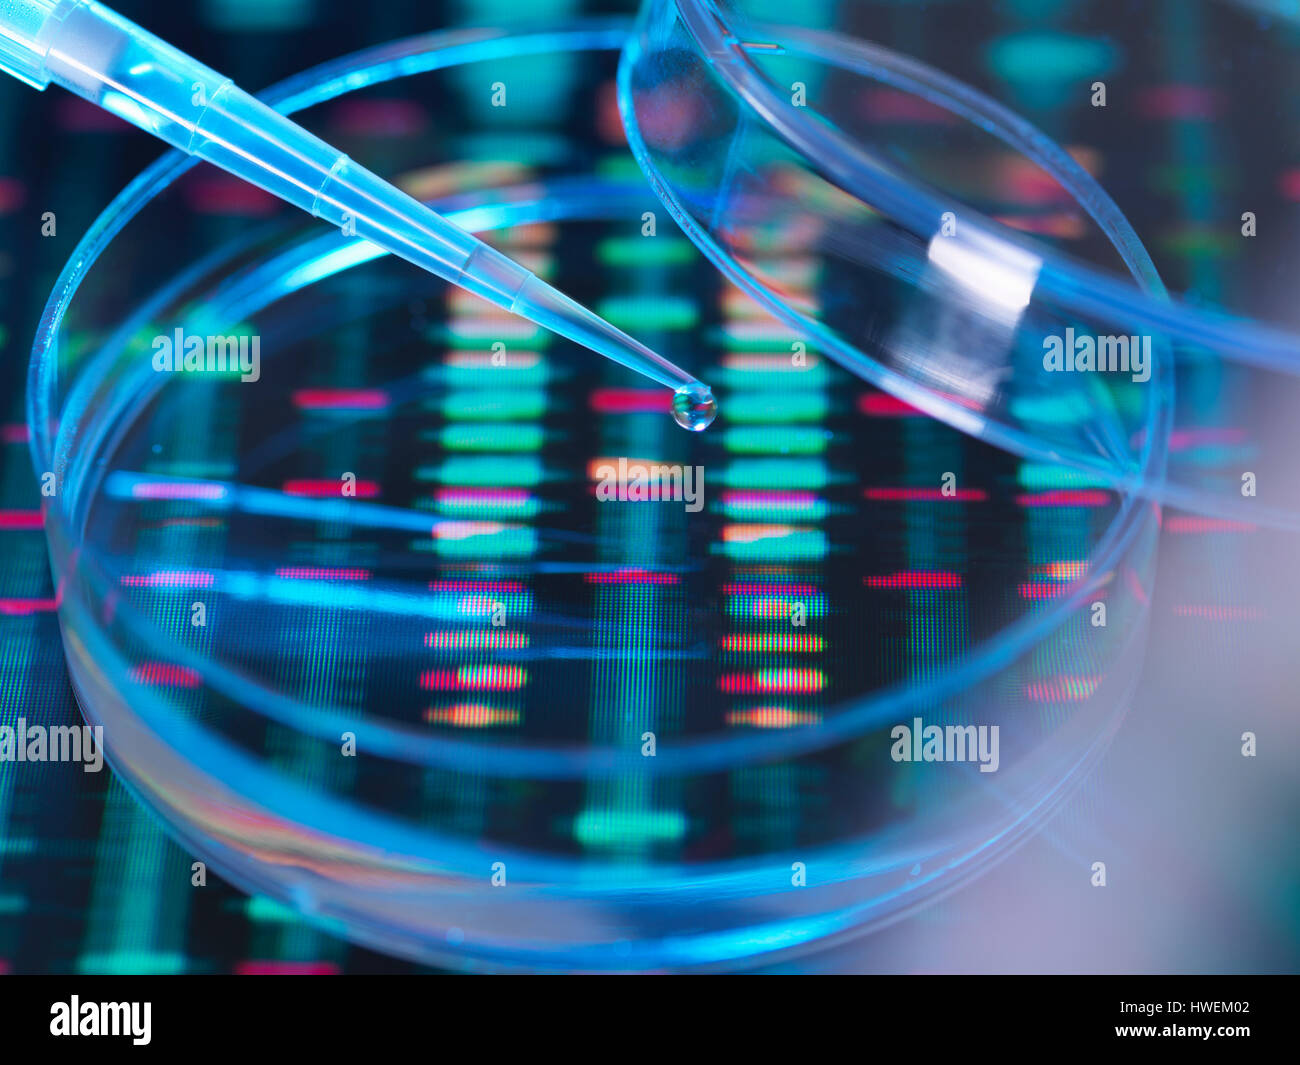 Genetic Research, A human sample being pipetted into a petri dish for genetic analysis sitting on DNA sequence - Stock Image